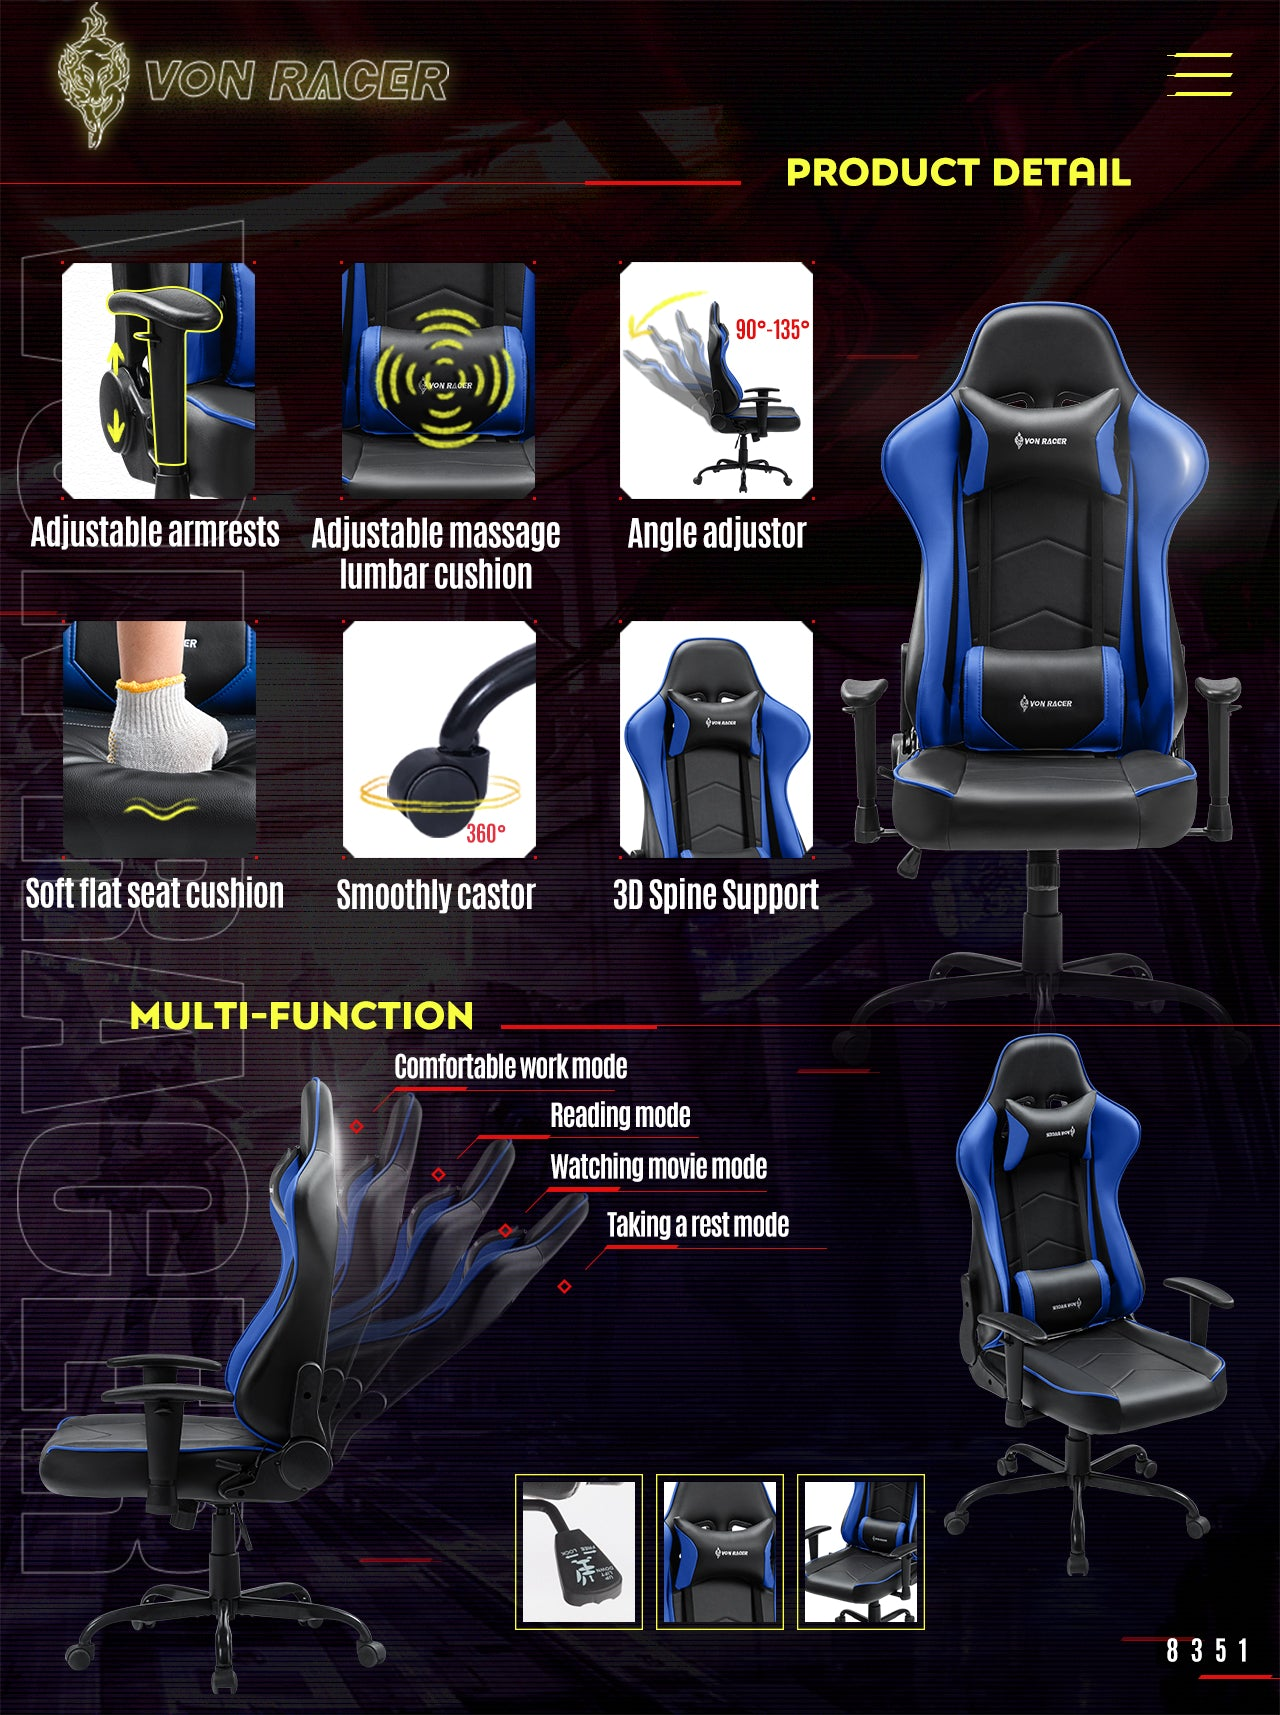 VON RACER Gaming Chair ADDAX Series Ergonomic blue gaming desk chair features